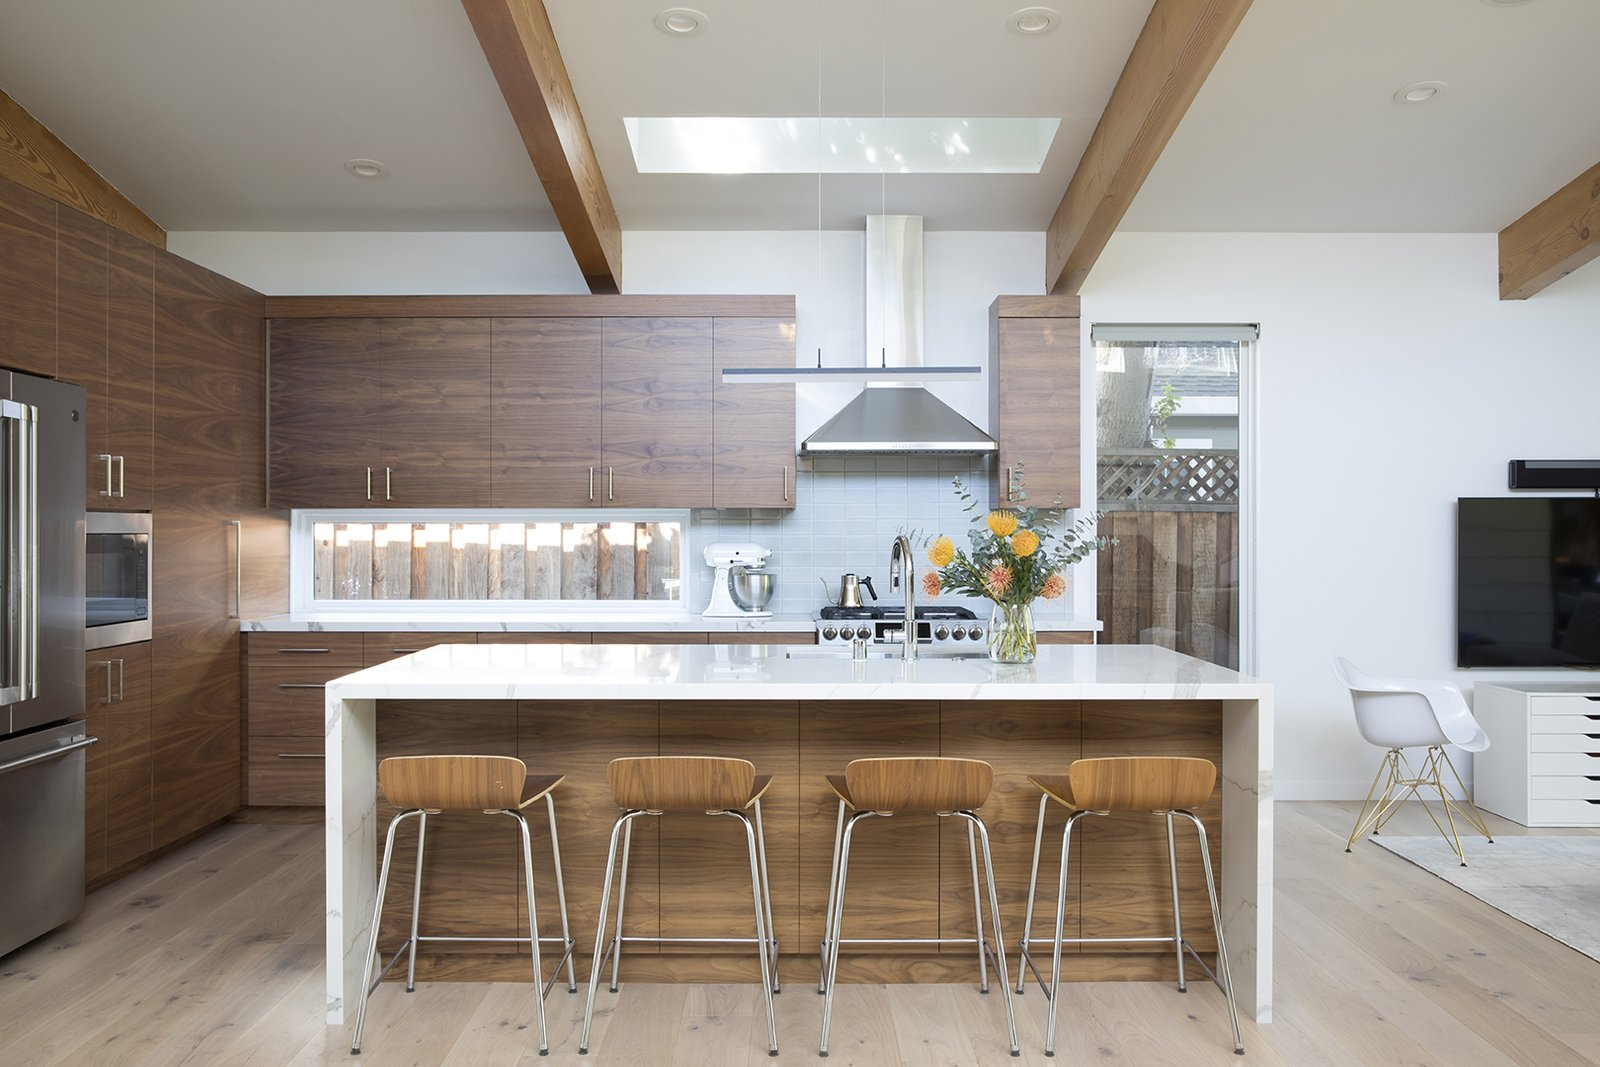 Kitchen, Microwave, Light Hardwood, Wood, Accent, Recessed, Range Hood, Refrigerator, Range, Marble, and Undermount Open plan kitchen with large waterfall island  Kitchen Microwave Accent Photos from Hedge